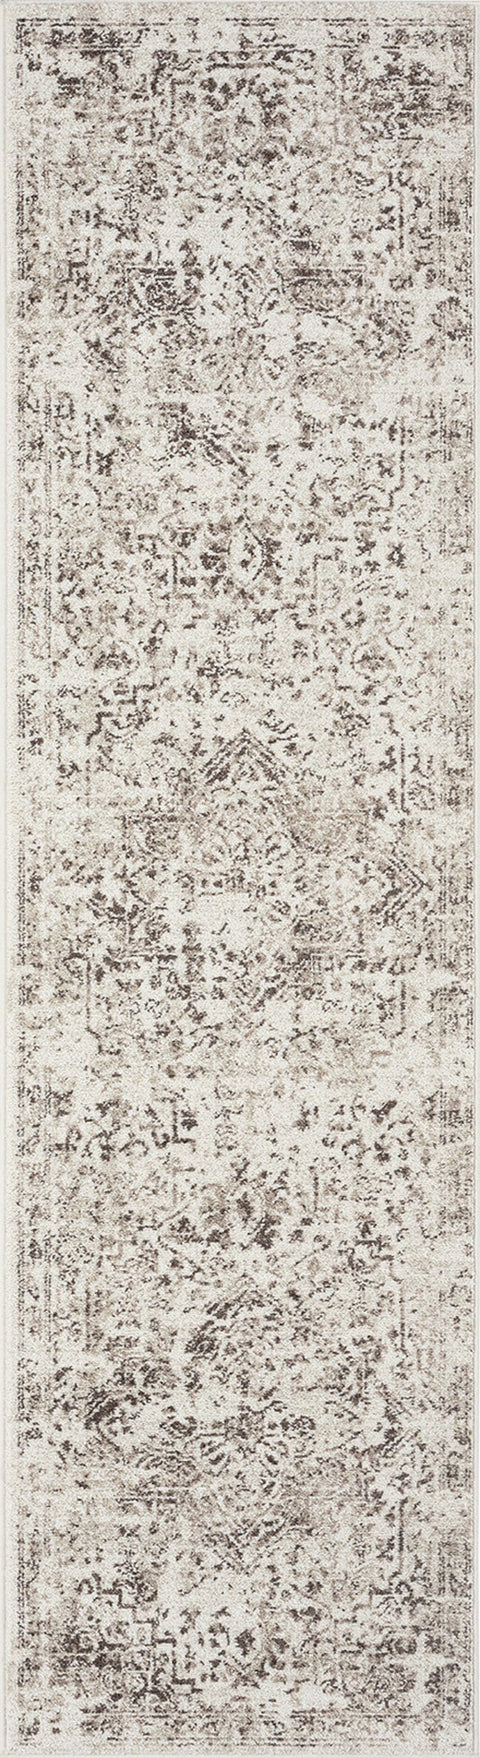 Liliana Cream and Brown Traditional Distressed Floral Runner Rug